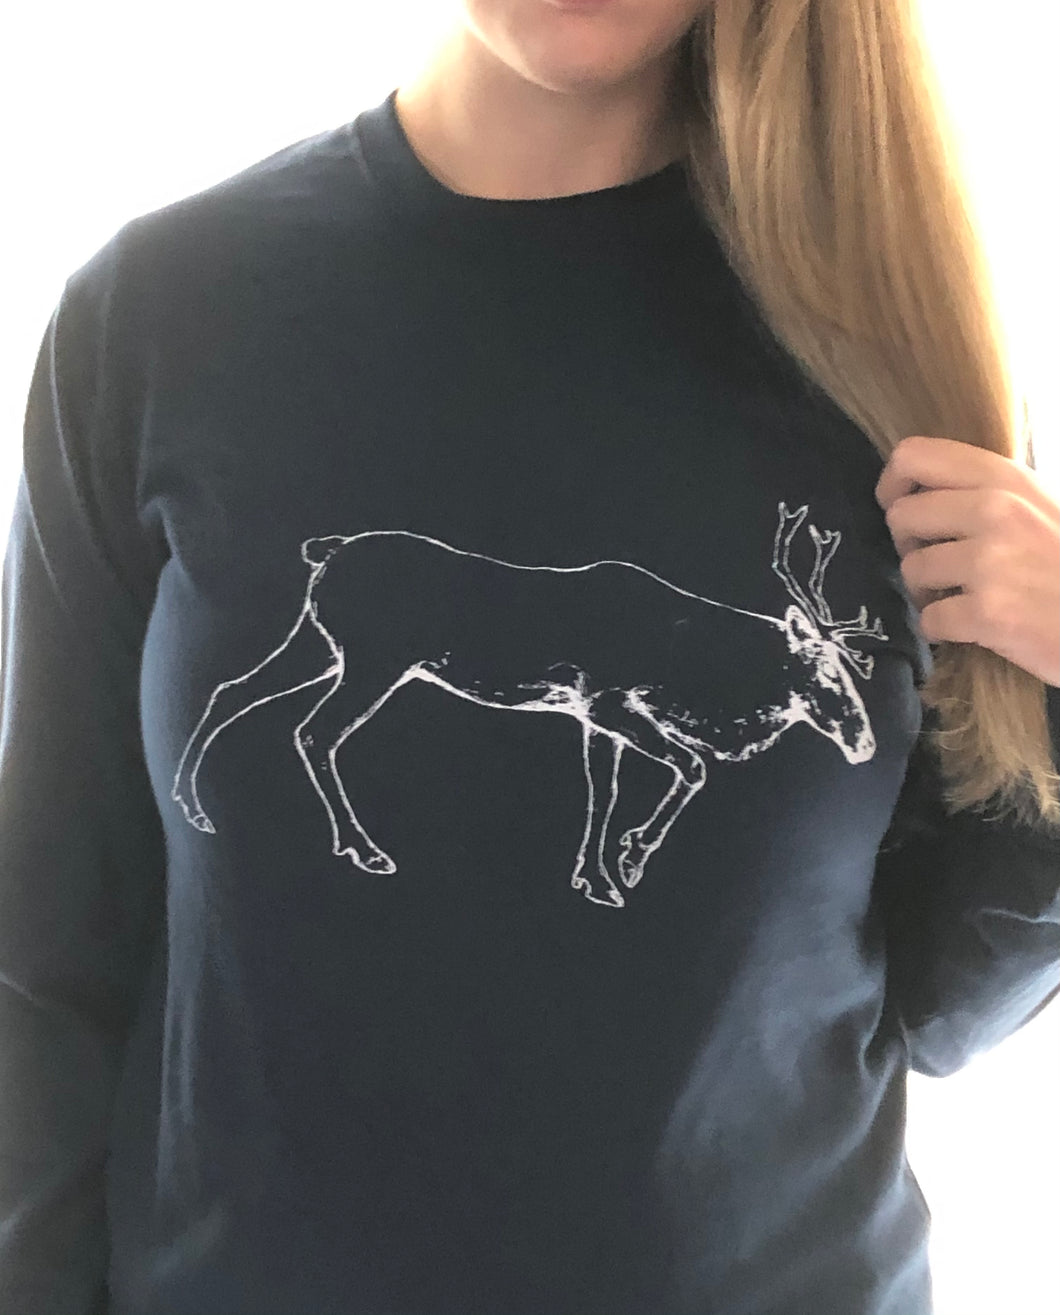 Caribou | UNISEX | NAVY | Made in Canada | Original Artwork by Bruce Pashak